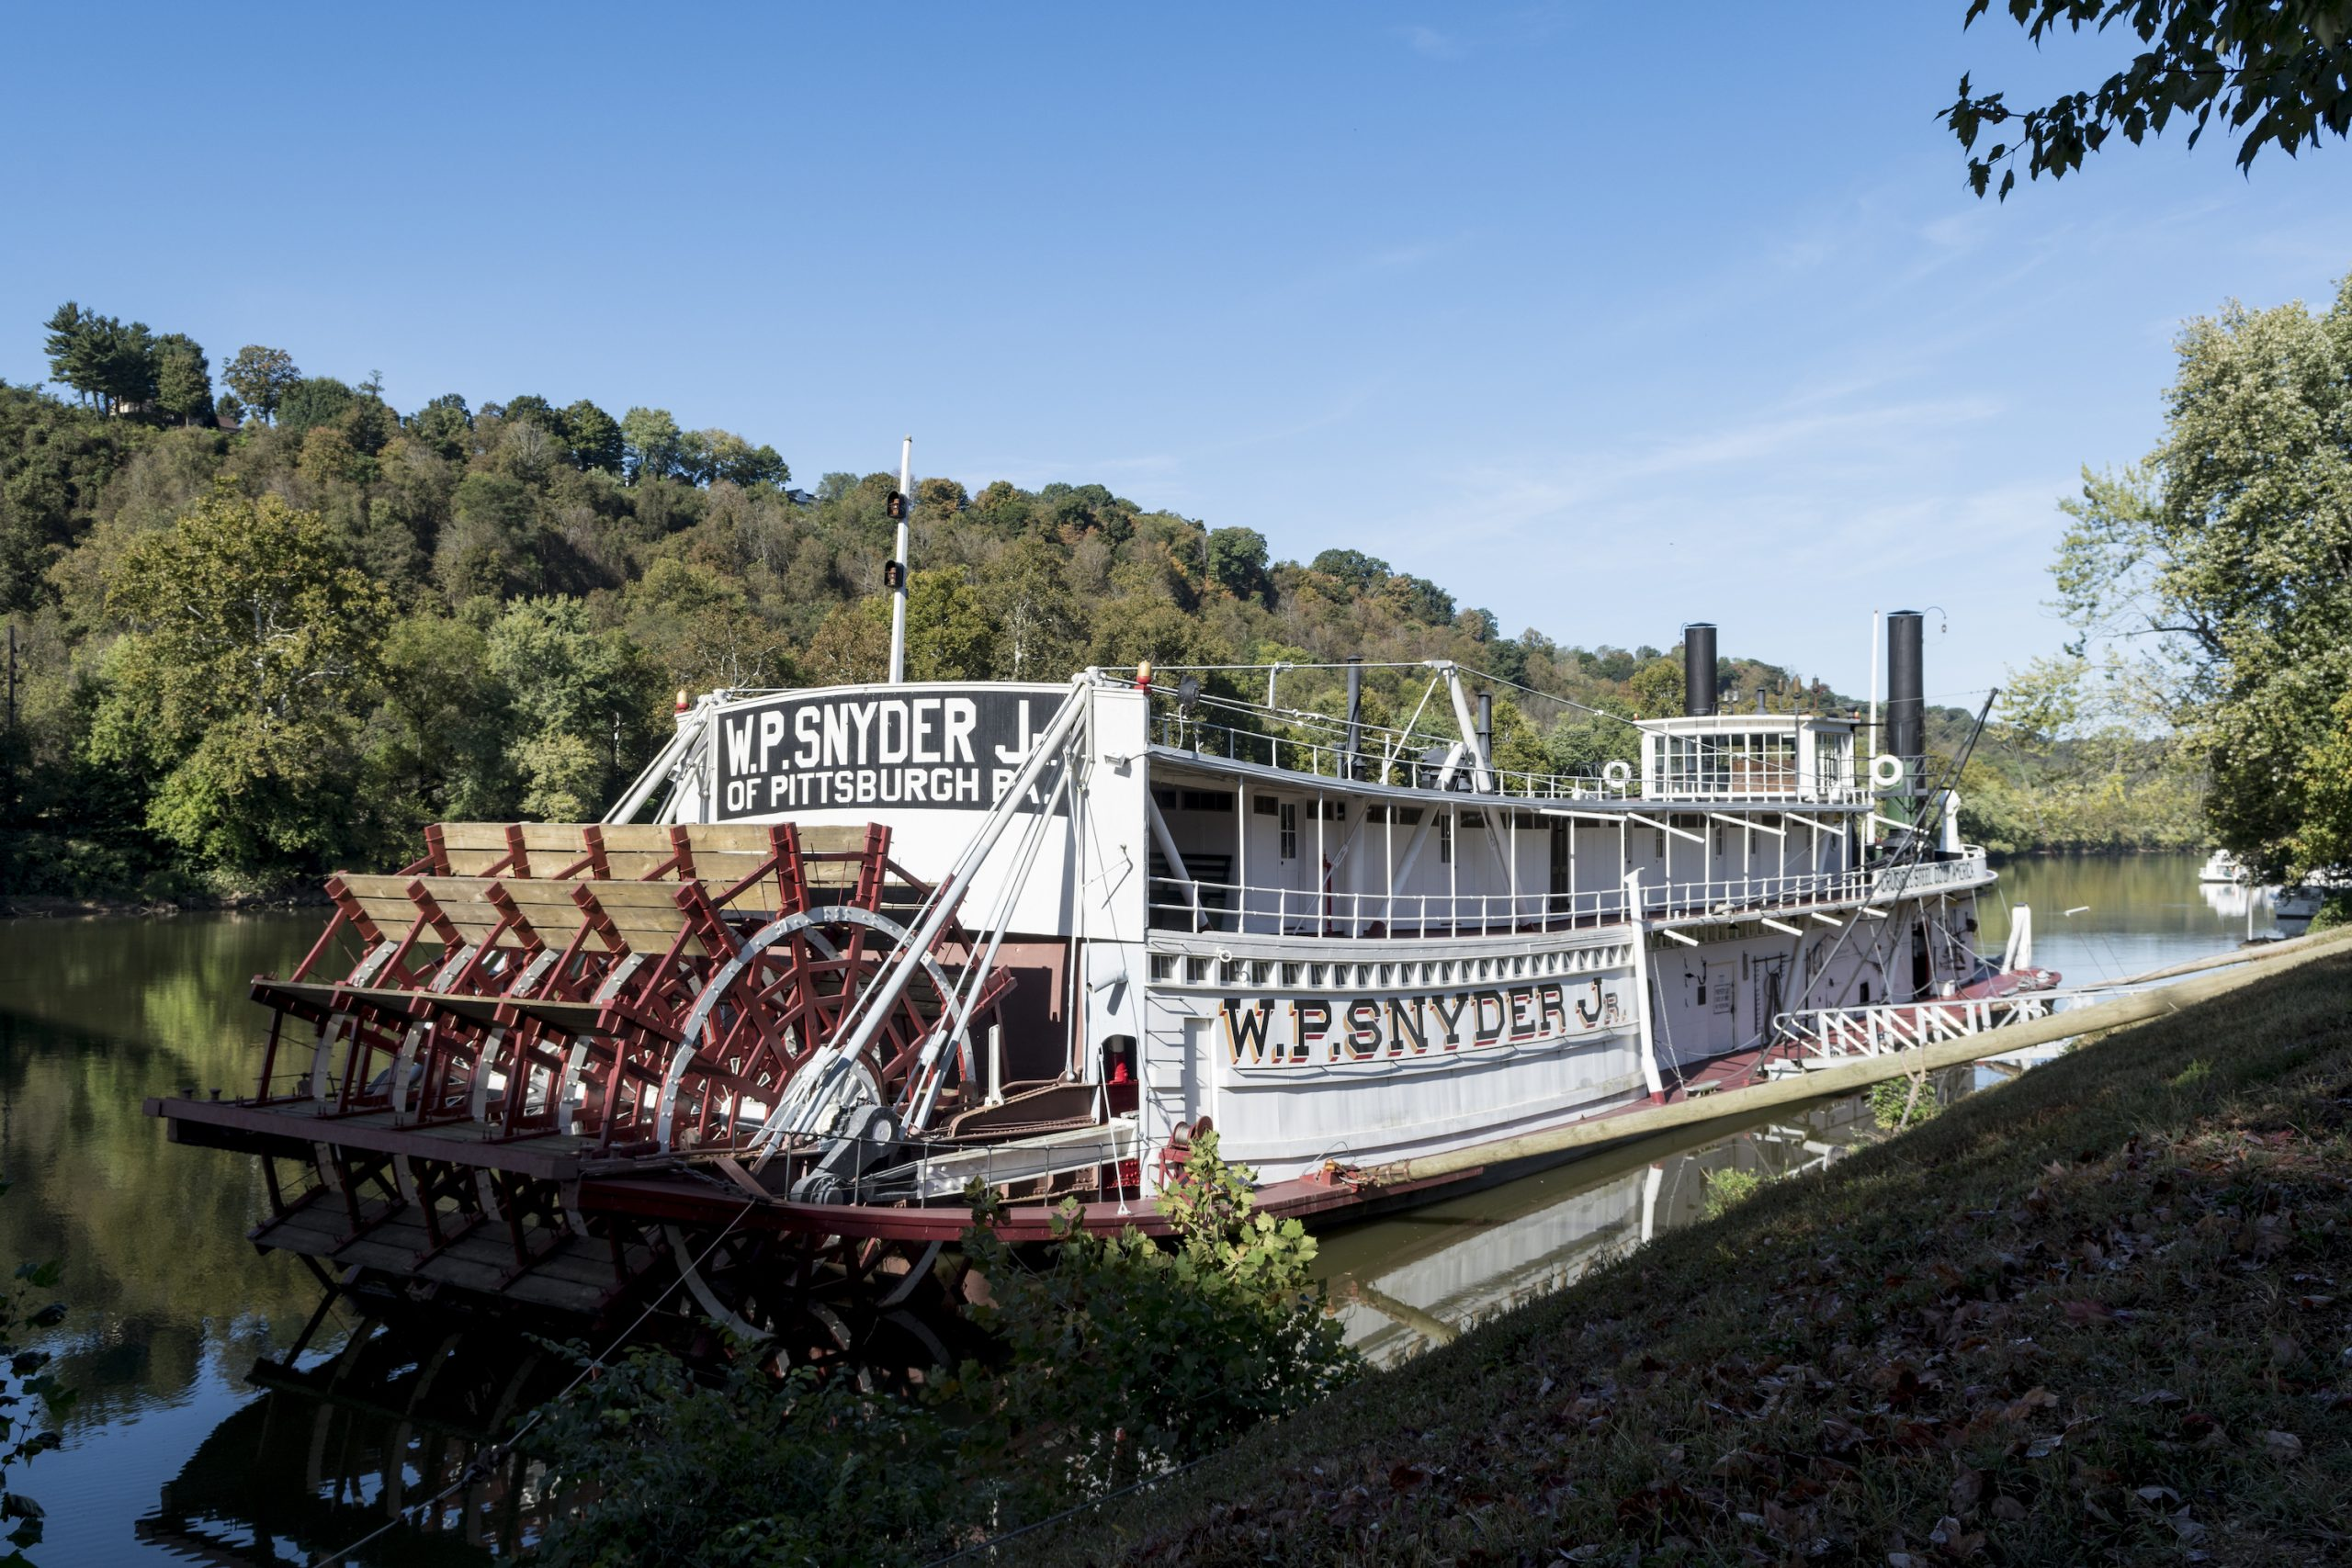 WP Snyder Steam Powered Ohio River Boat